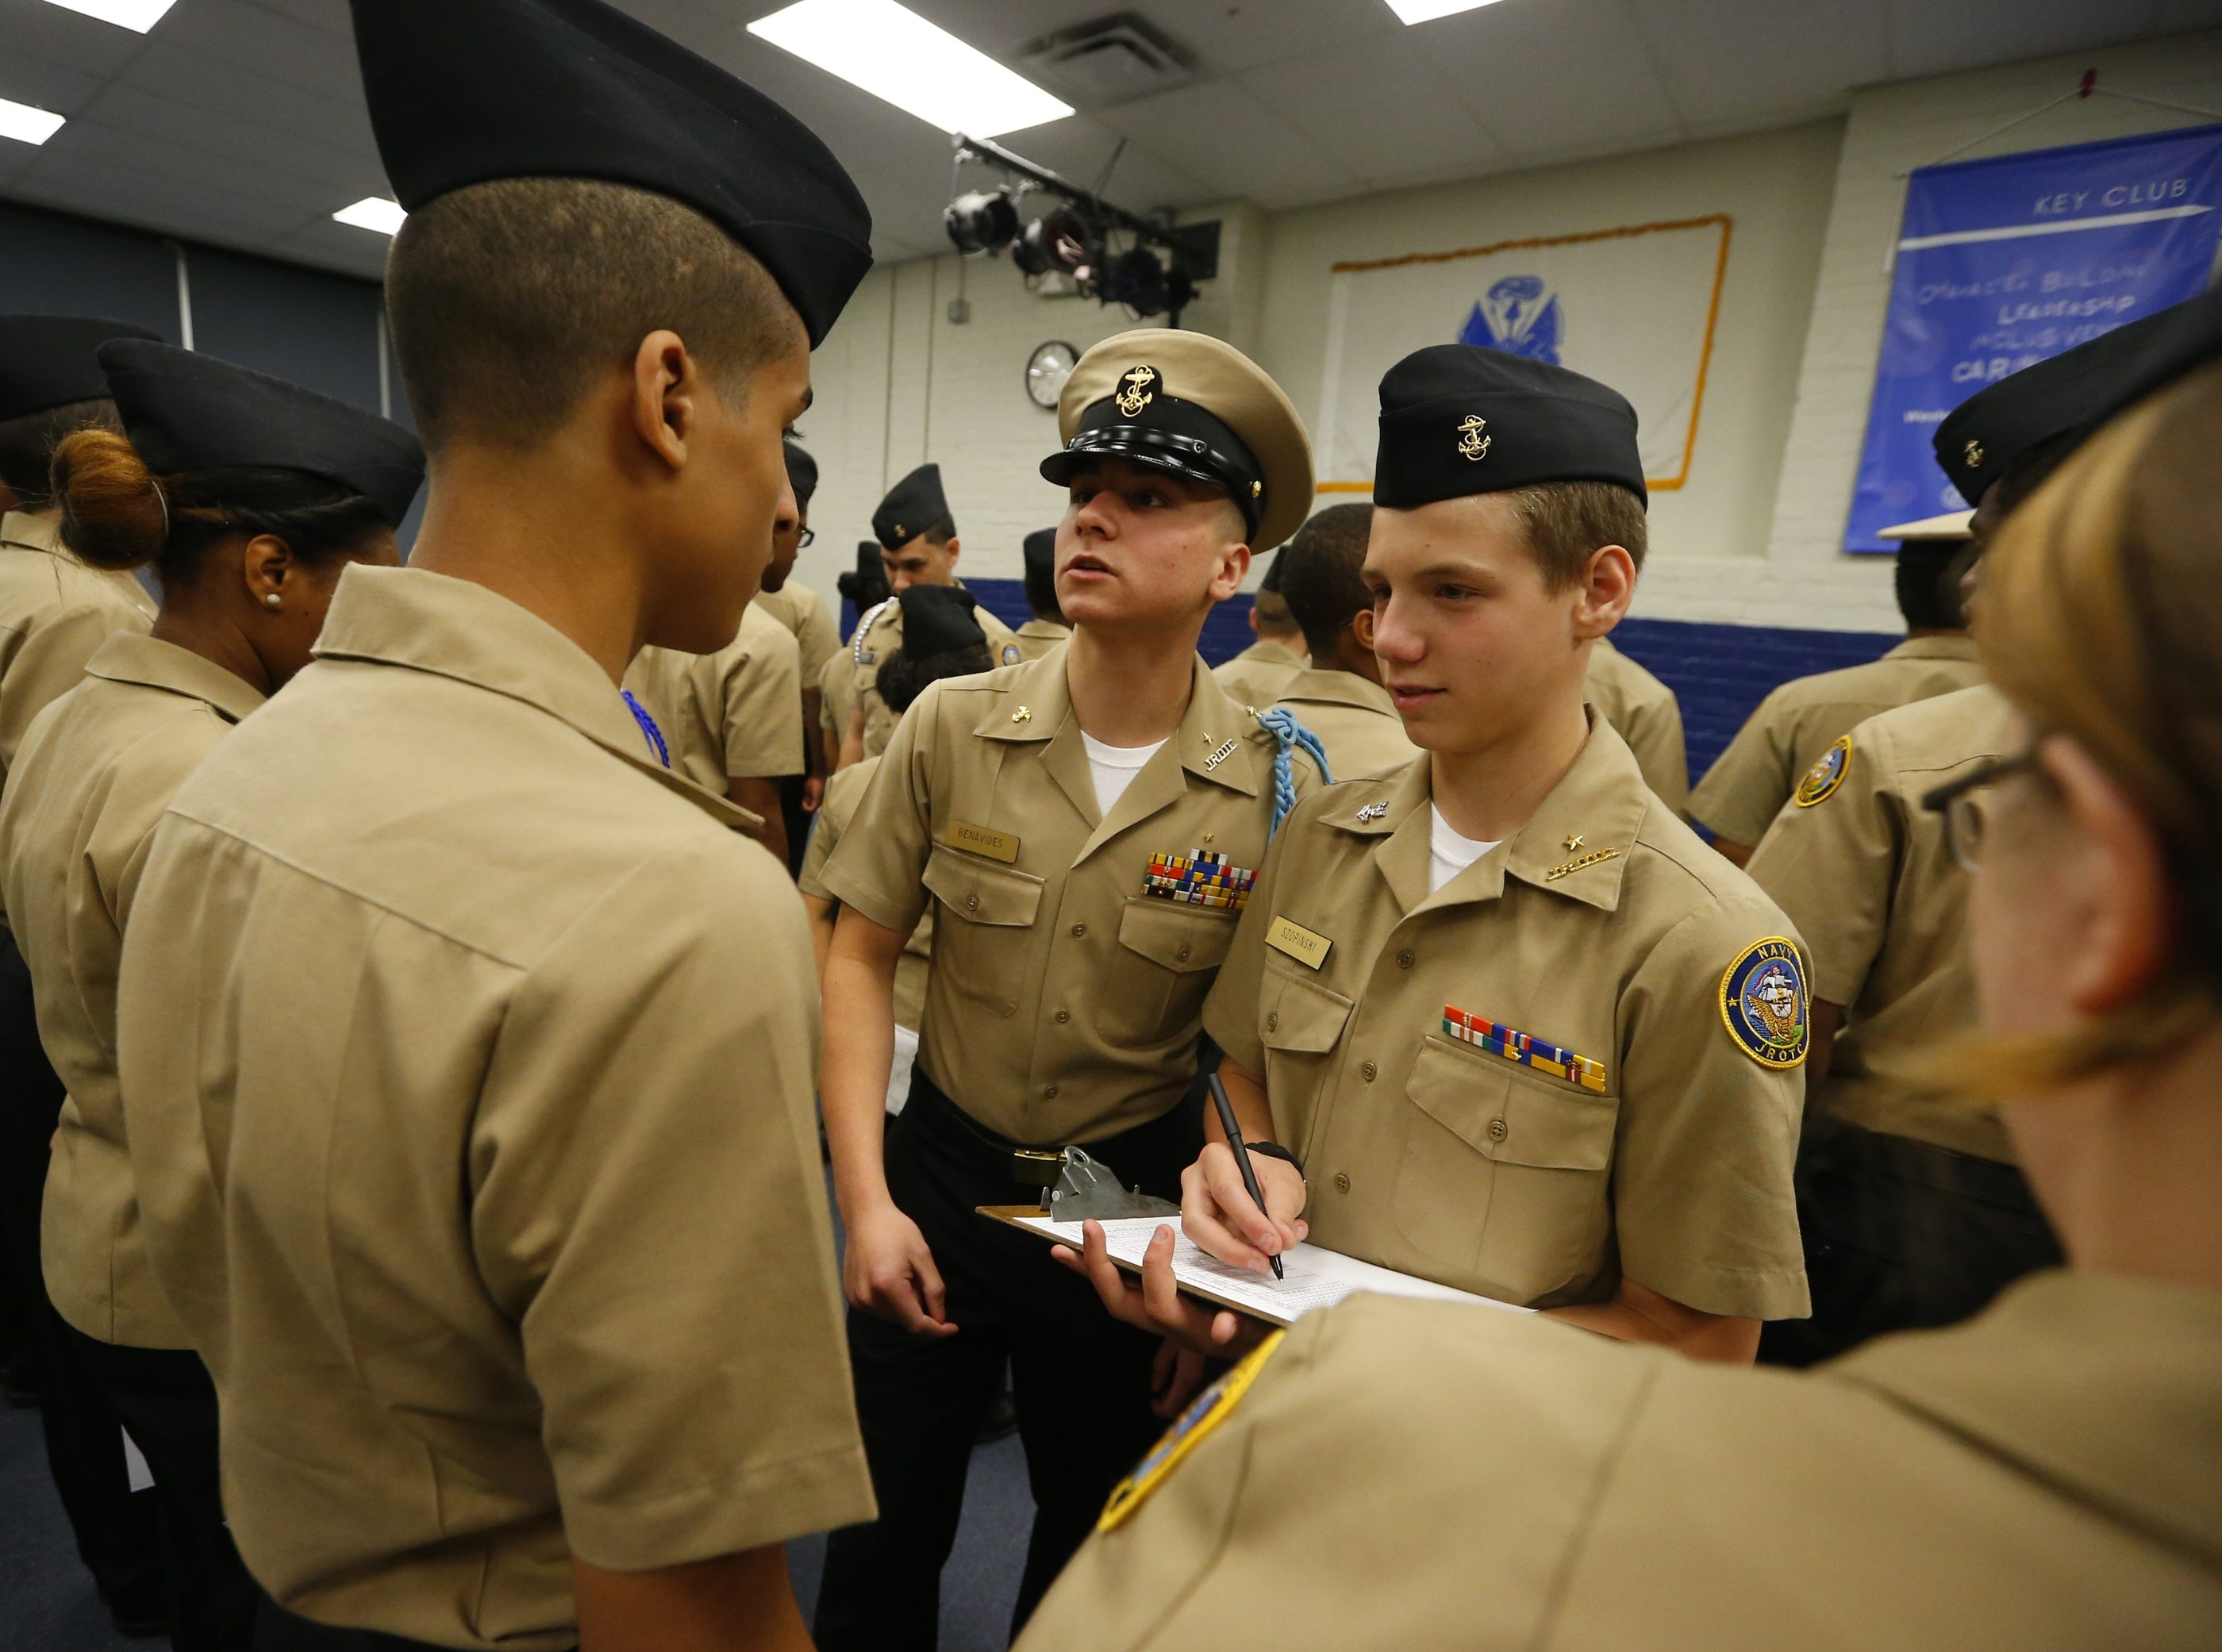 Western New York Maritime Charter School students undergo uniform inspection, this time by Chief Petty Officer Claudio Benavides, center, and Petty Officer 2nd Class Jarek Szopinski last week.